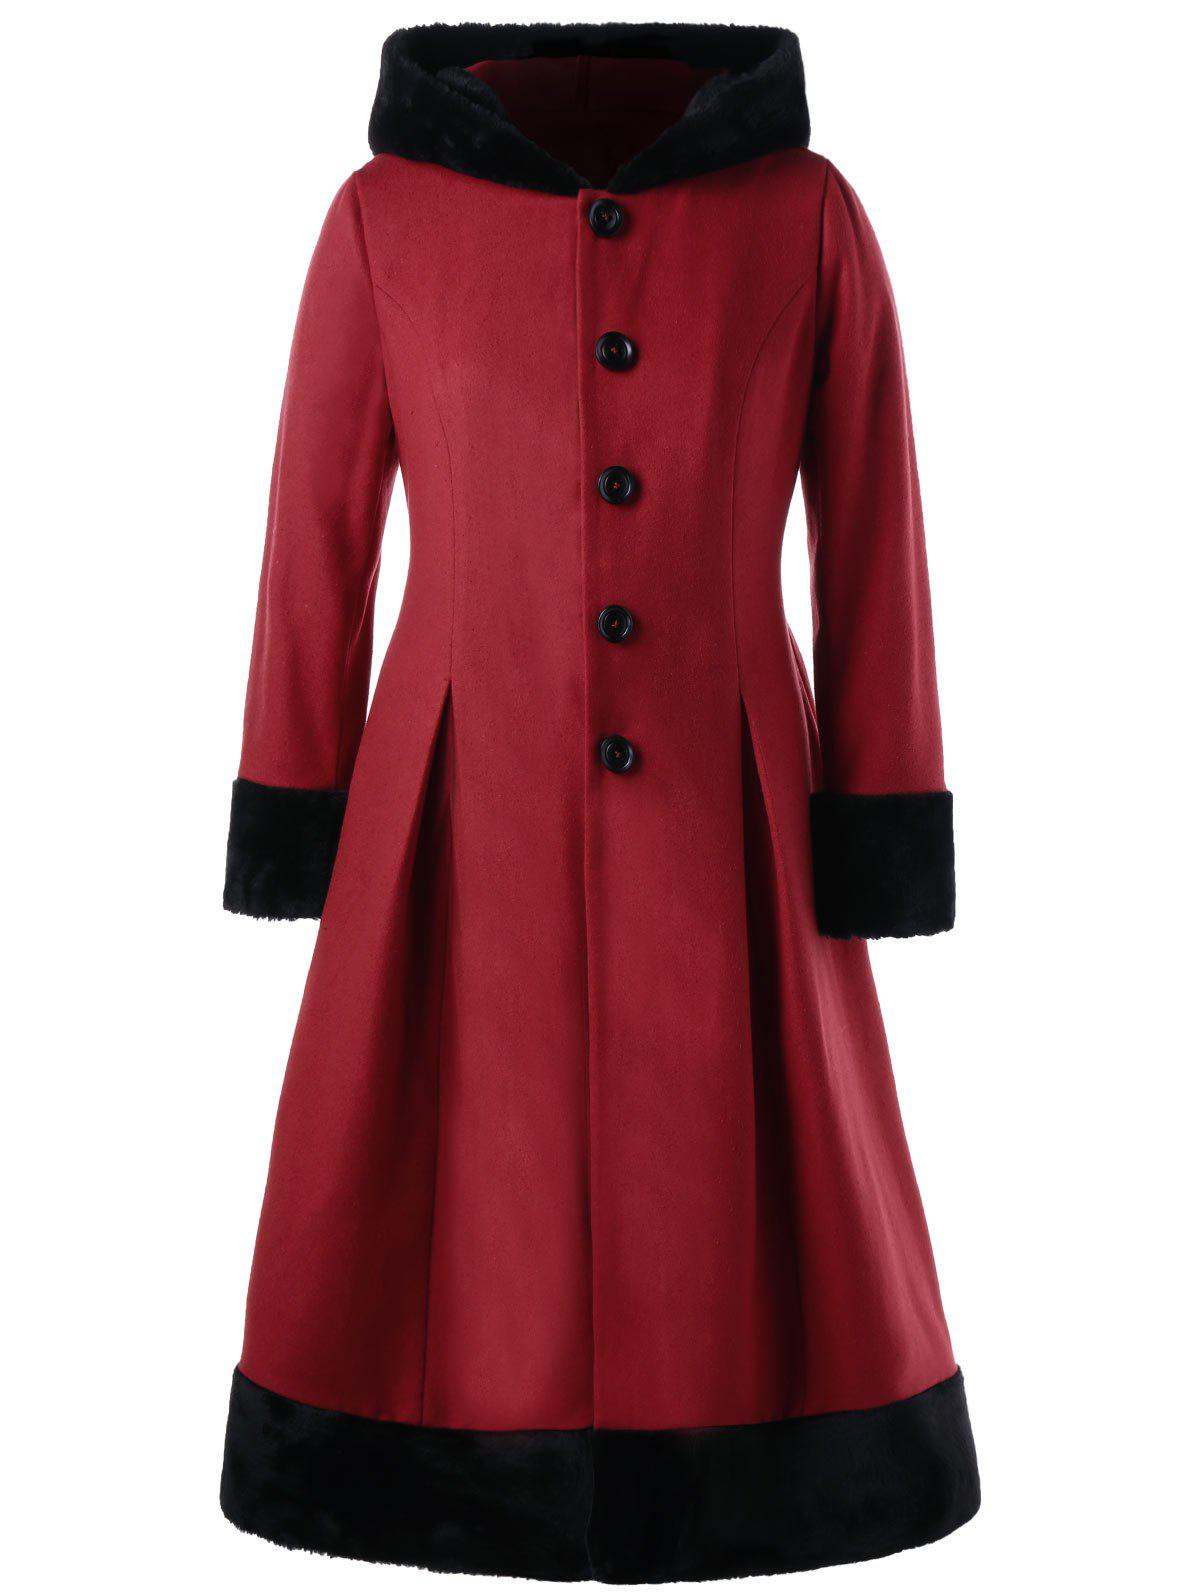 Plus Size Faux Fur Hooded Button Up Dress CoatWOMEN<br><br>Size: 2XL; Color: RED; Clothes Type: Wool &amp; Blends; Material: Polyester,Wool; Type: Slim; Shirt Length: Long; Sleeve Length: Full; Collar: Hooded; Pattern Type: Solid; Style: Vintage; Season: Fall,Spring; Weight: 1.2000kg; Package Contents: 1 x Coat;